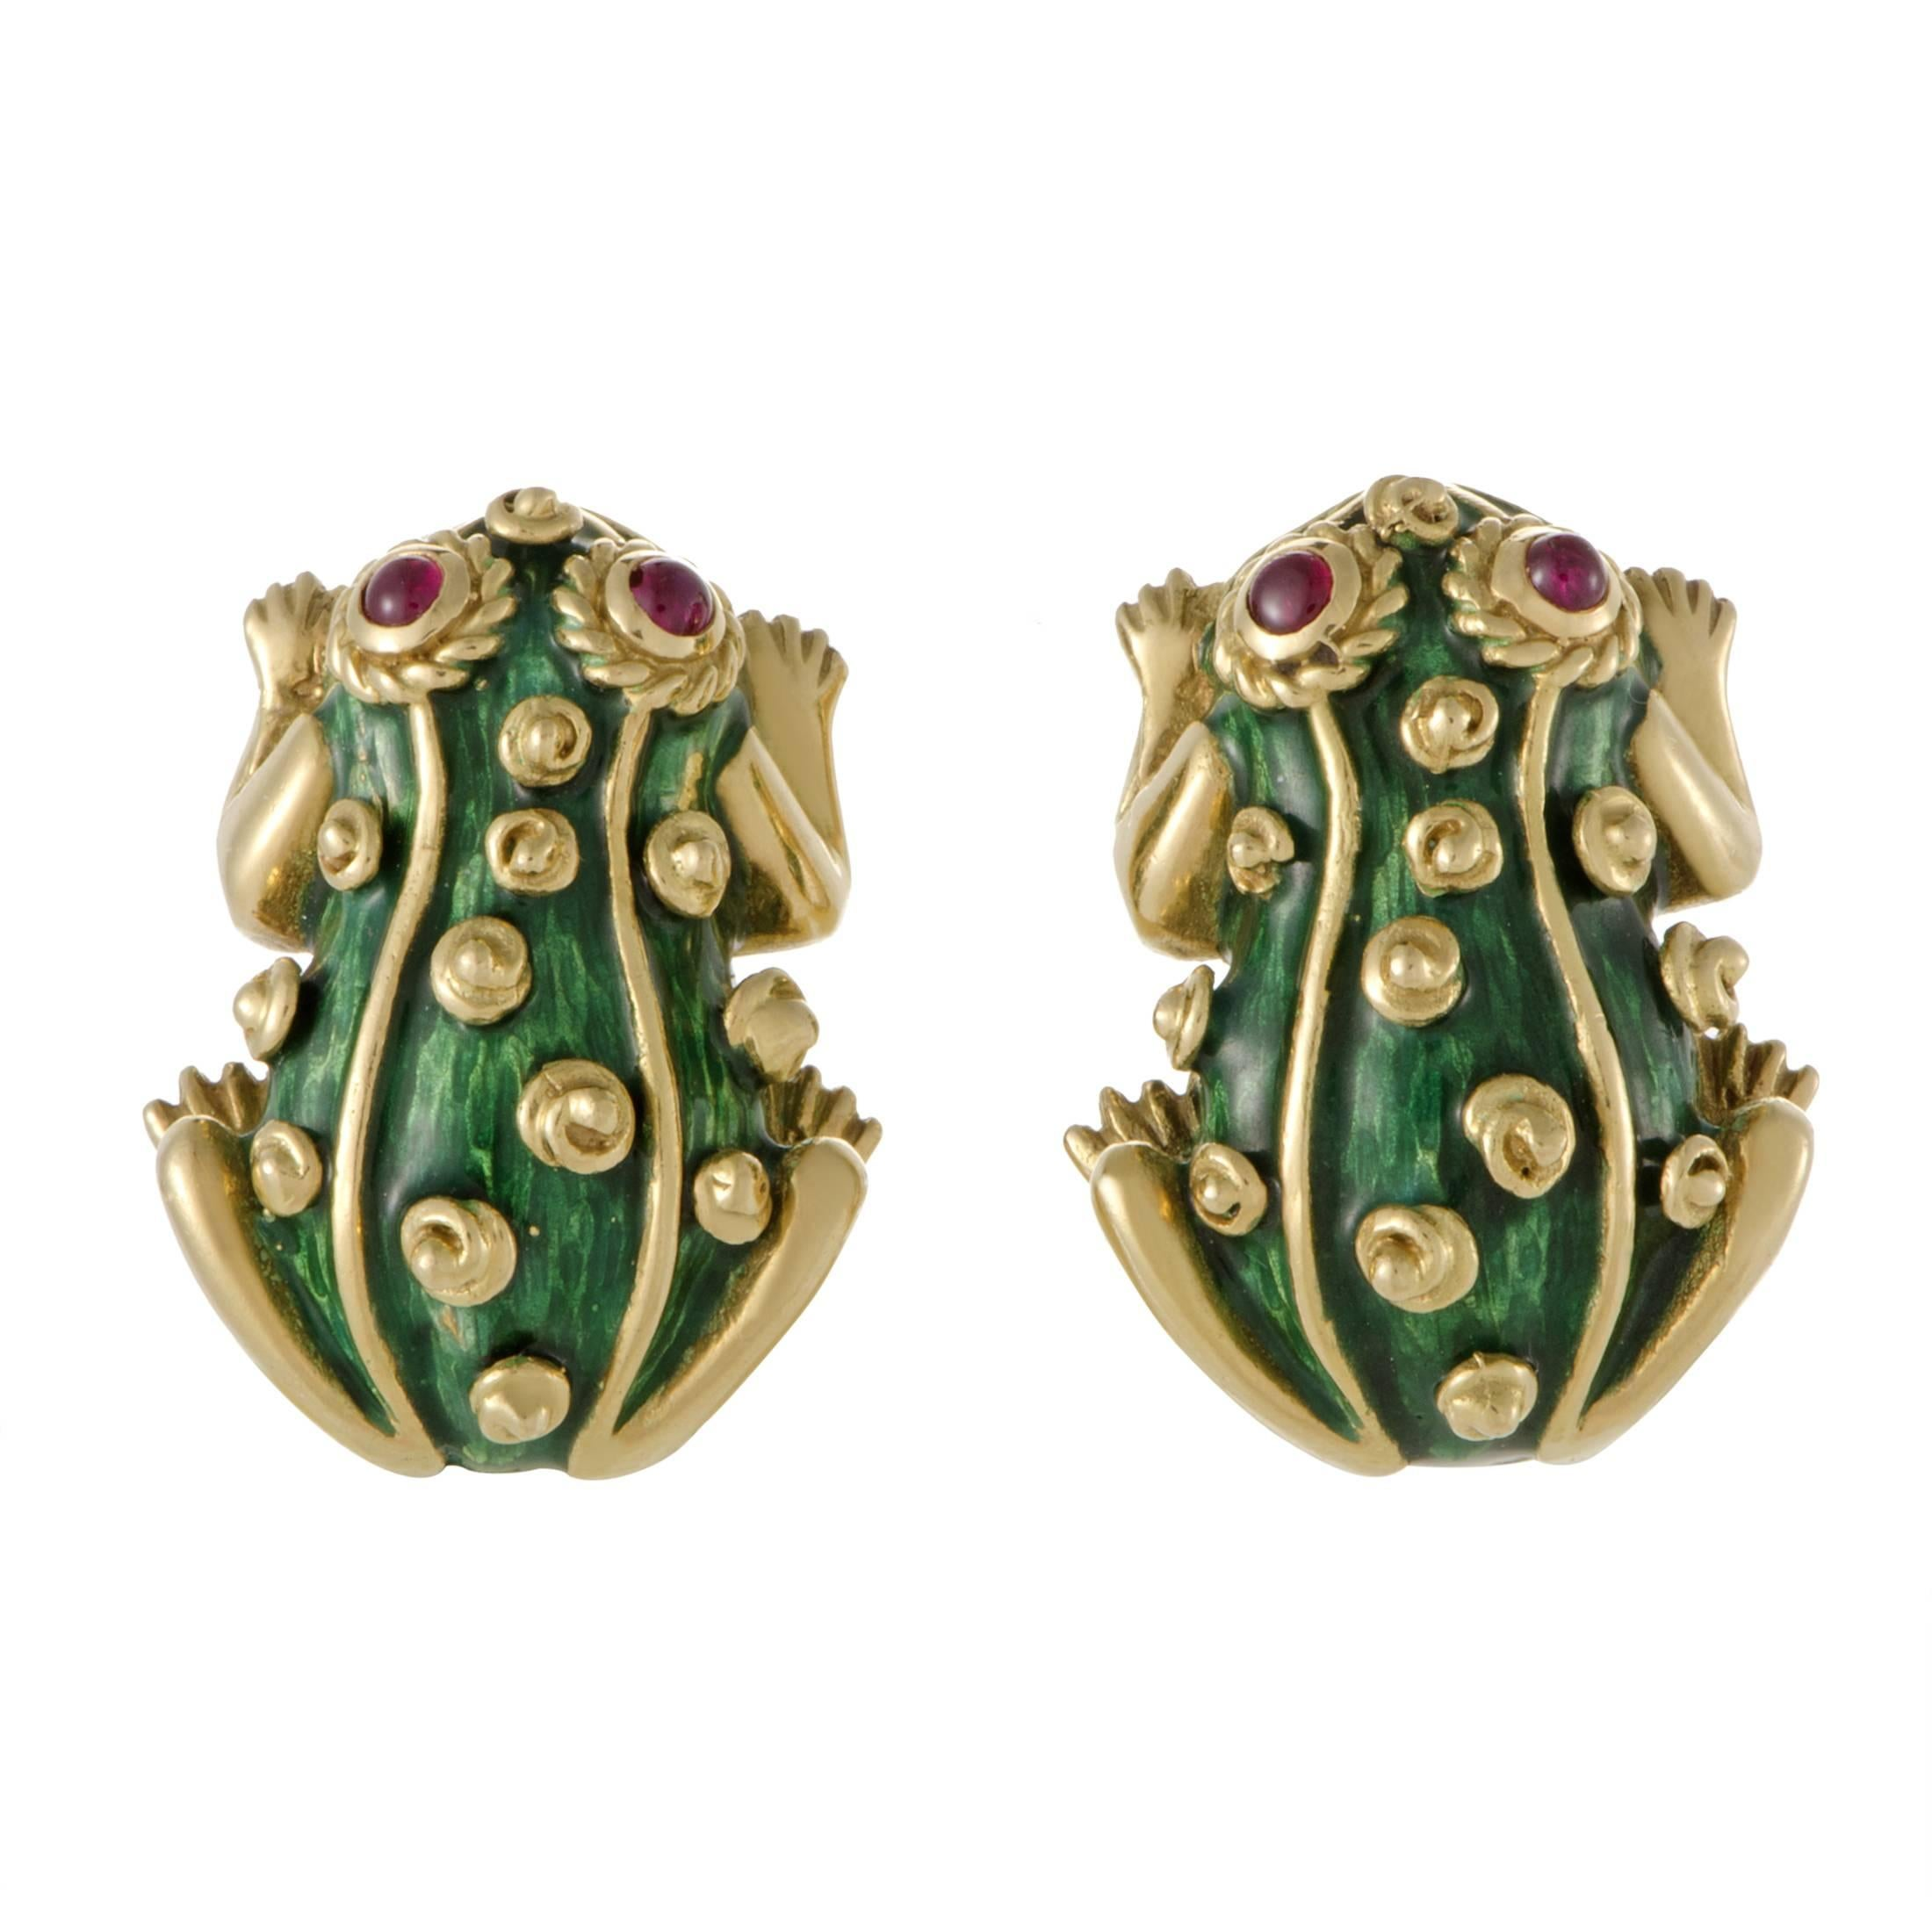 frog webb on products enamel clip jewelry david earrings enlarged